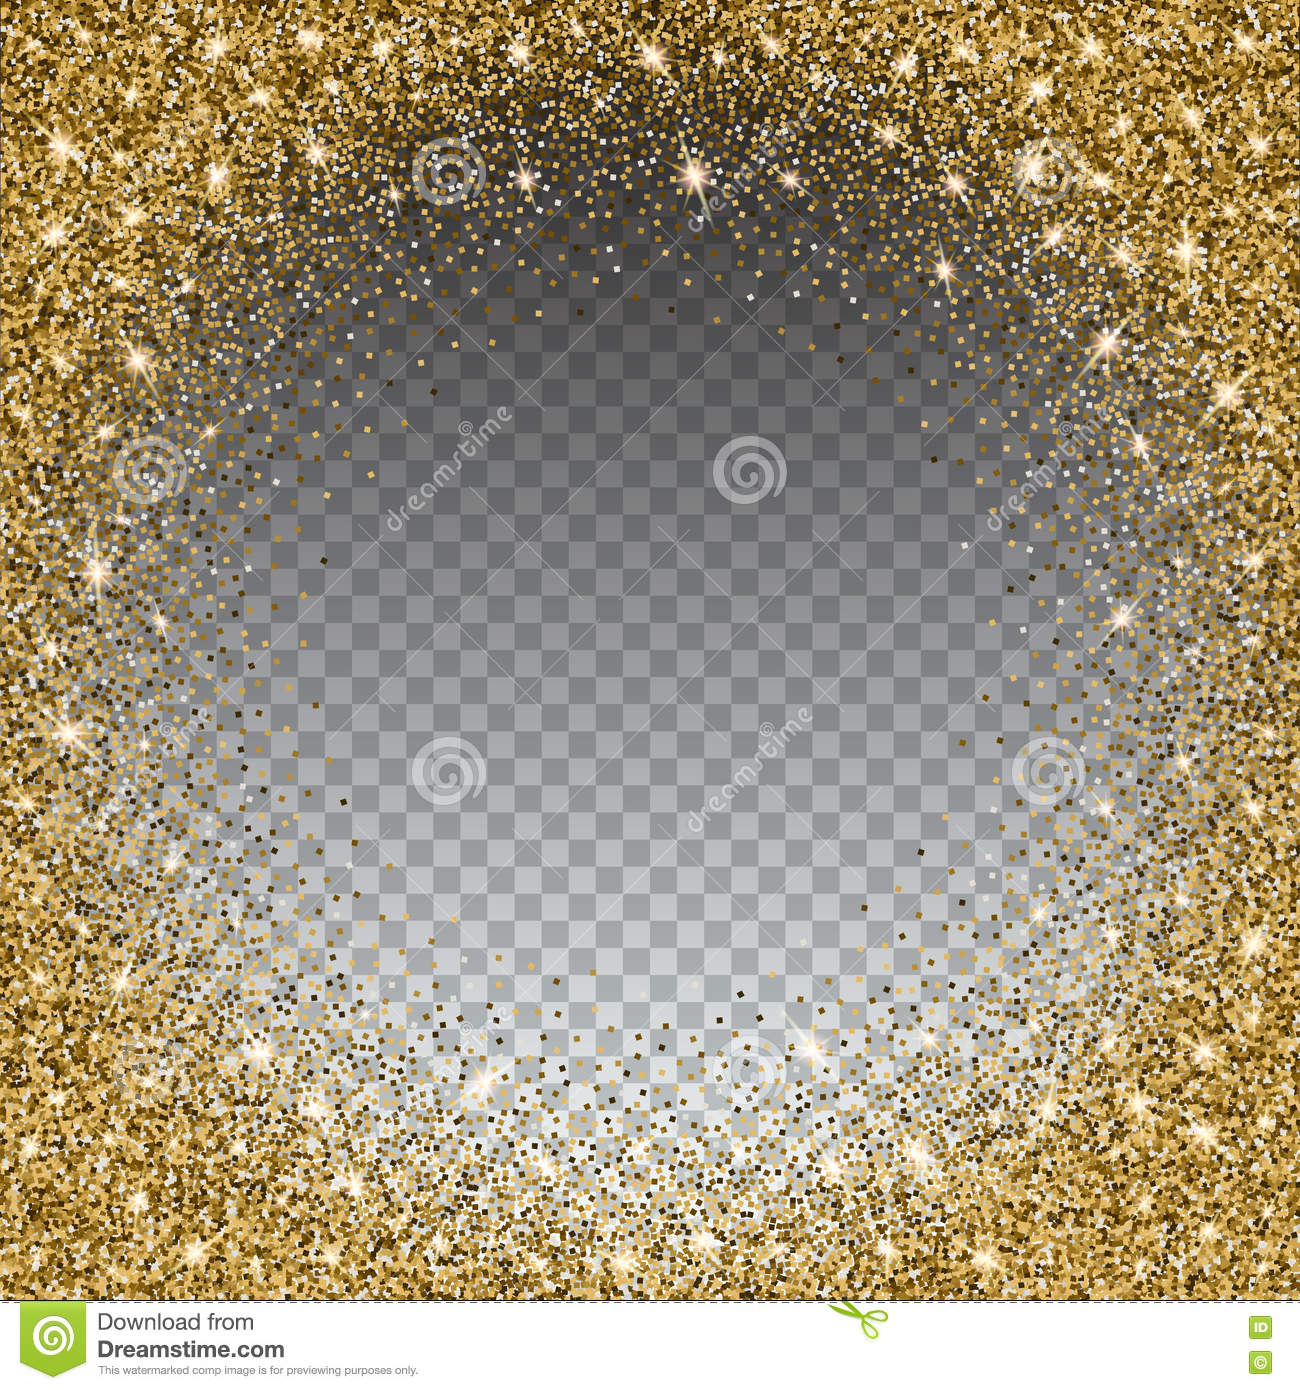 Gold glitter bright vector transparent background golden sparkles - Gold Glitter And Bright Sand Transparent Background